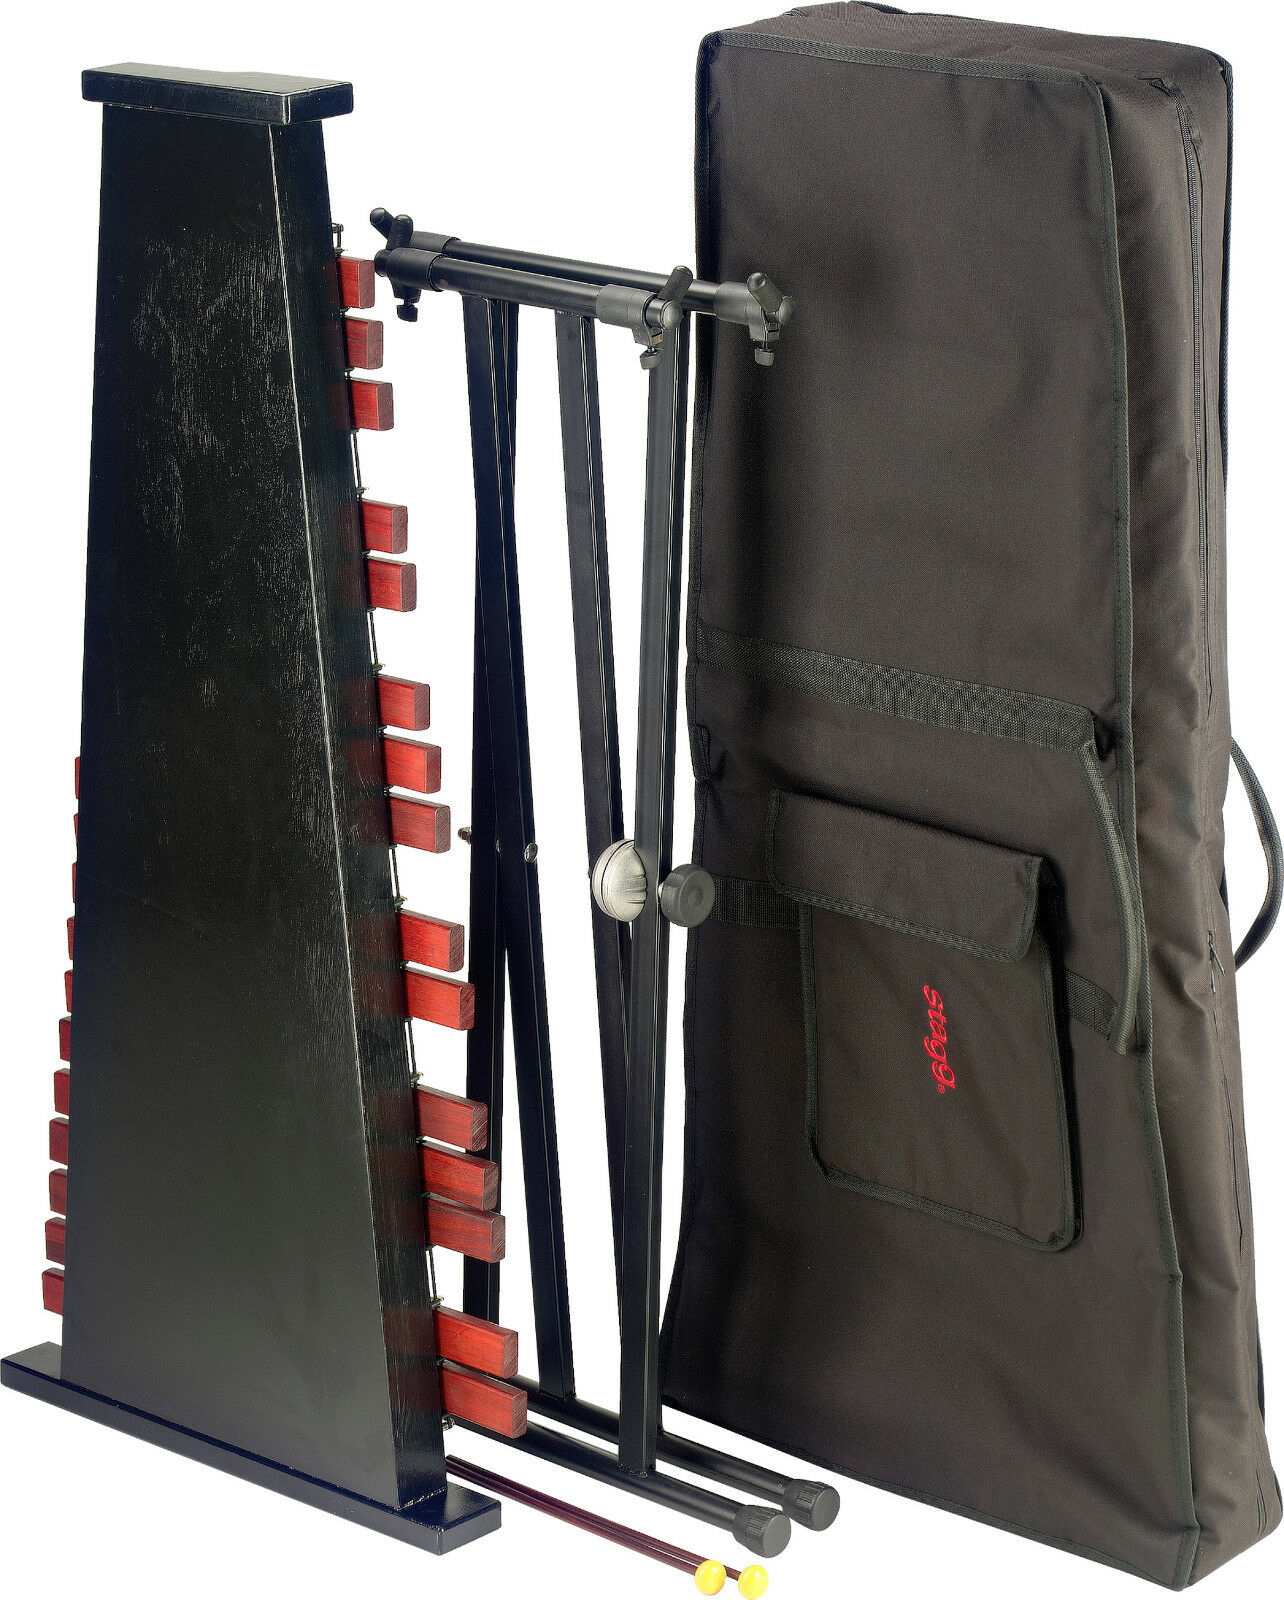 XYLOPHON STAGG STAGG STAGG XYLO-SET 37 Xylophone mit Tasche 98ba34